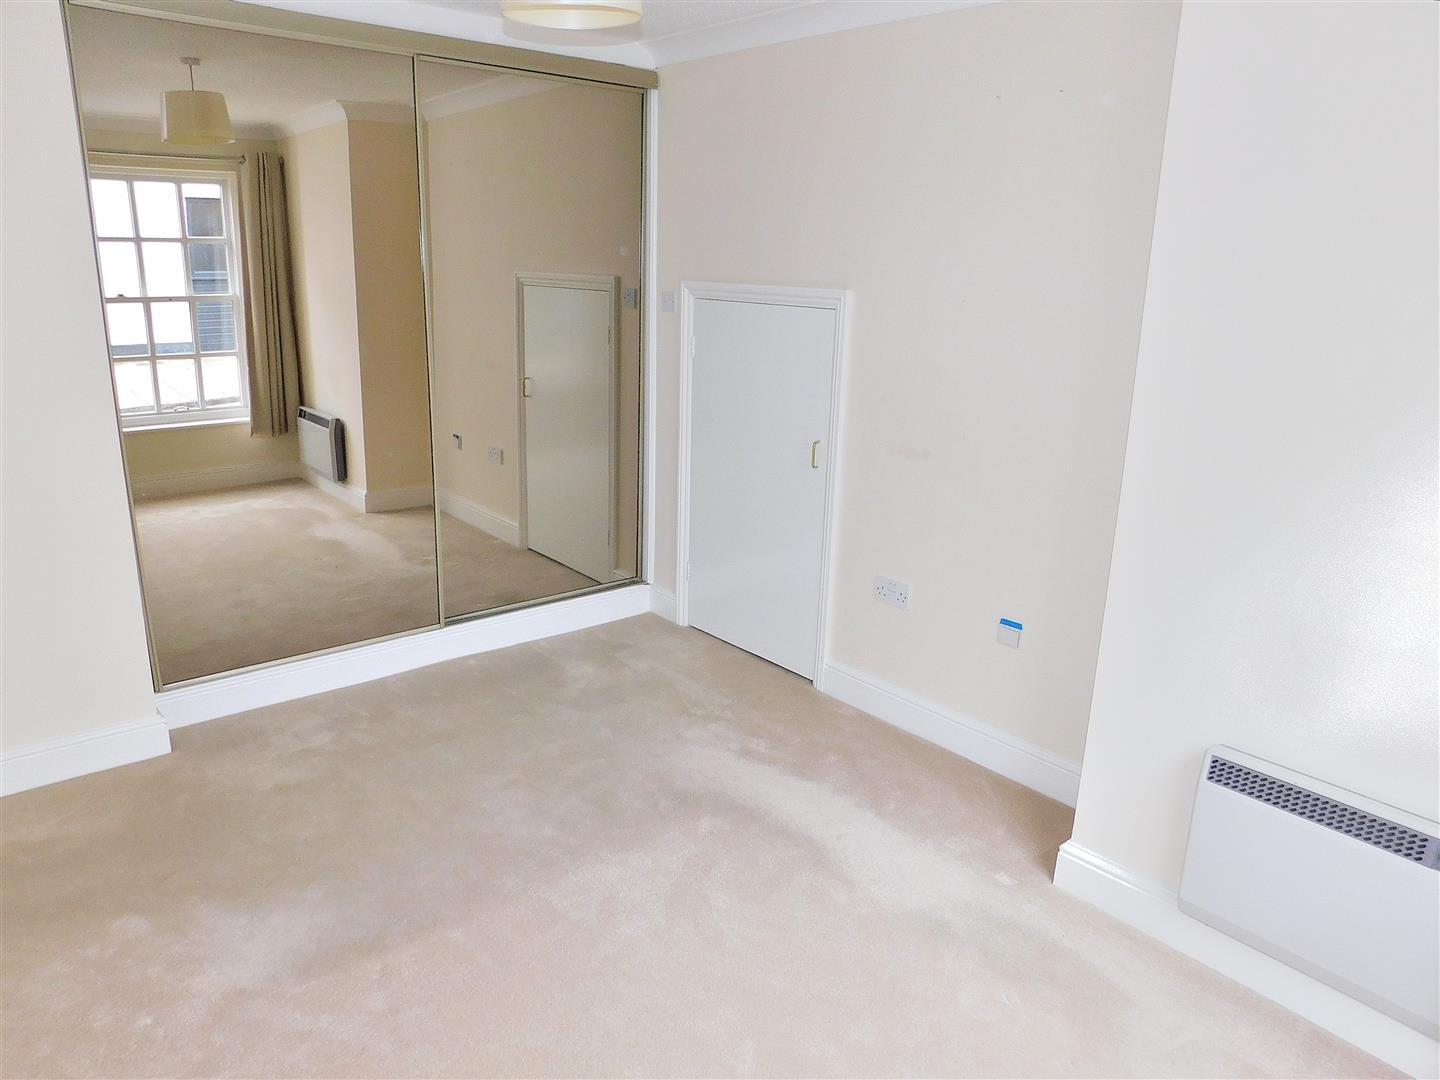 2 bed flat for sale in King's Lynn, PE30 1EG  - Property Image 7